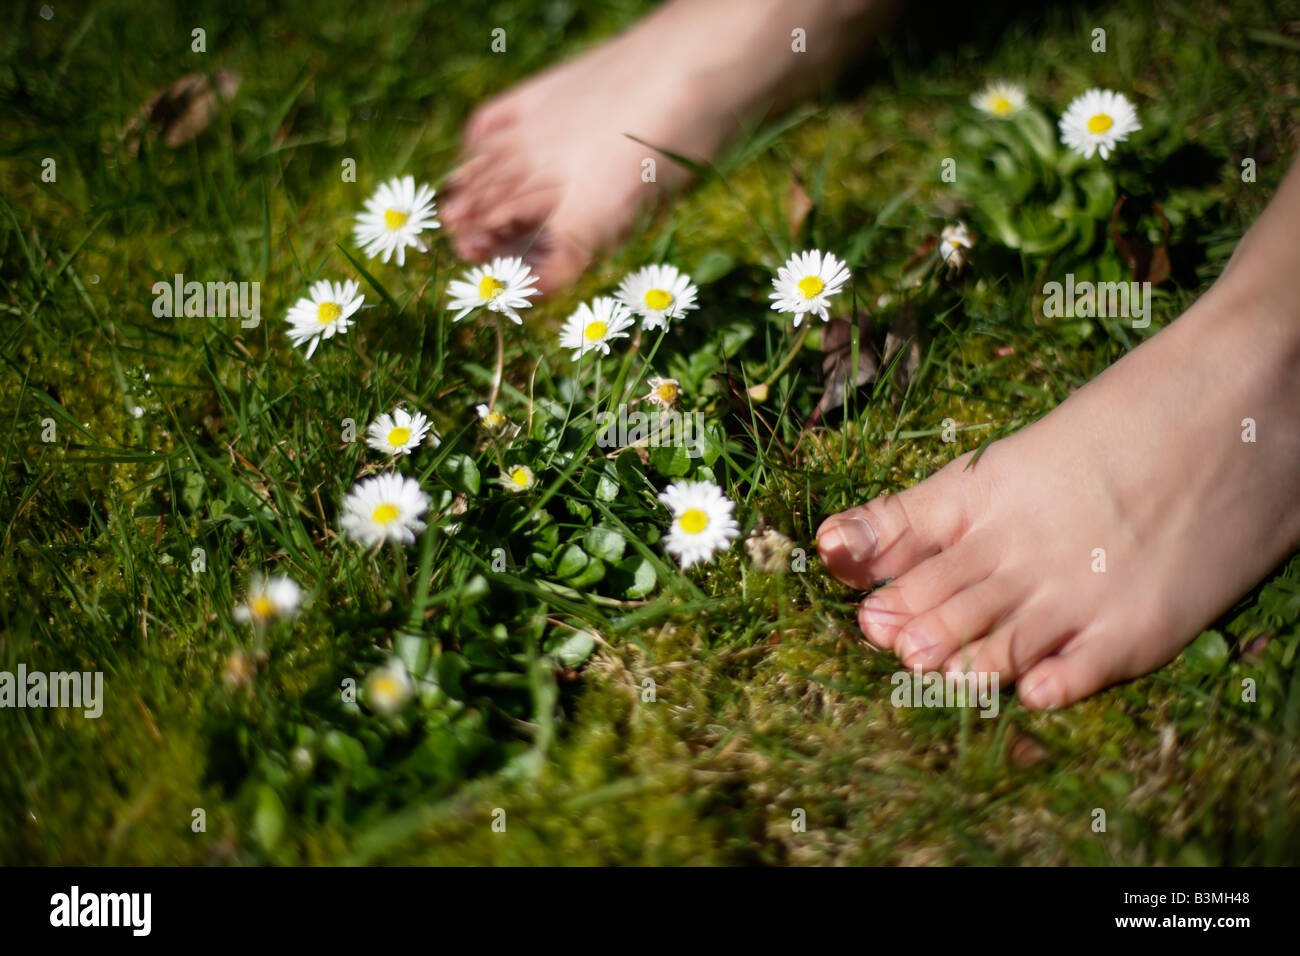 Six year old boy stands barefoot amongst daisies in lawn Stock Photo